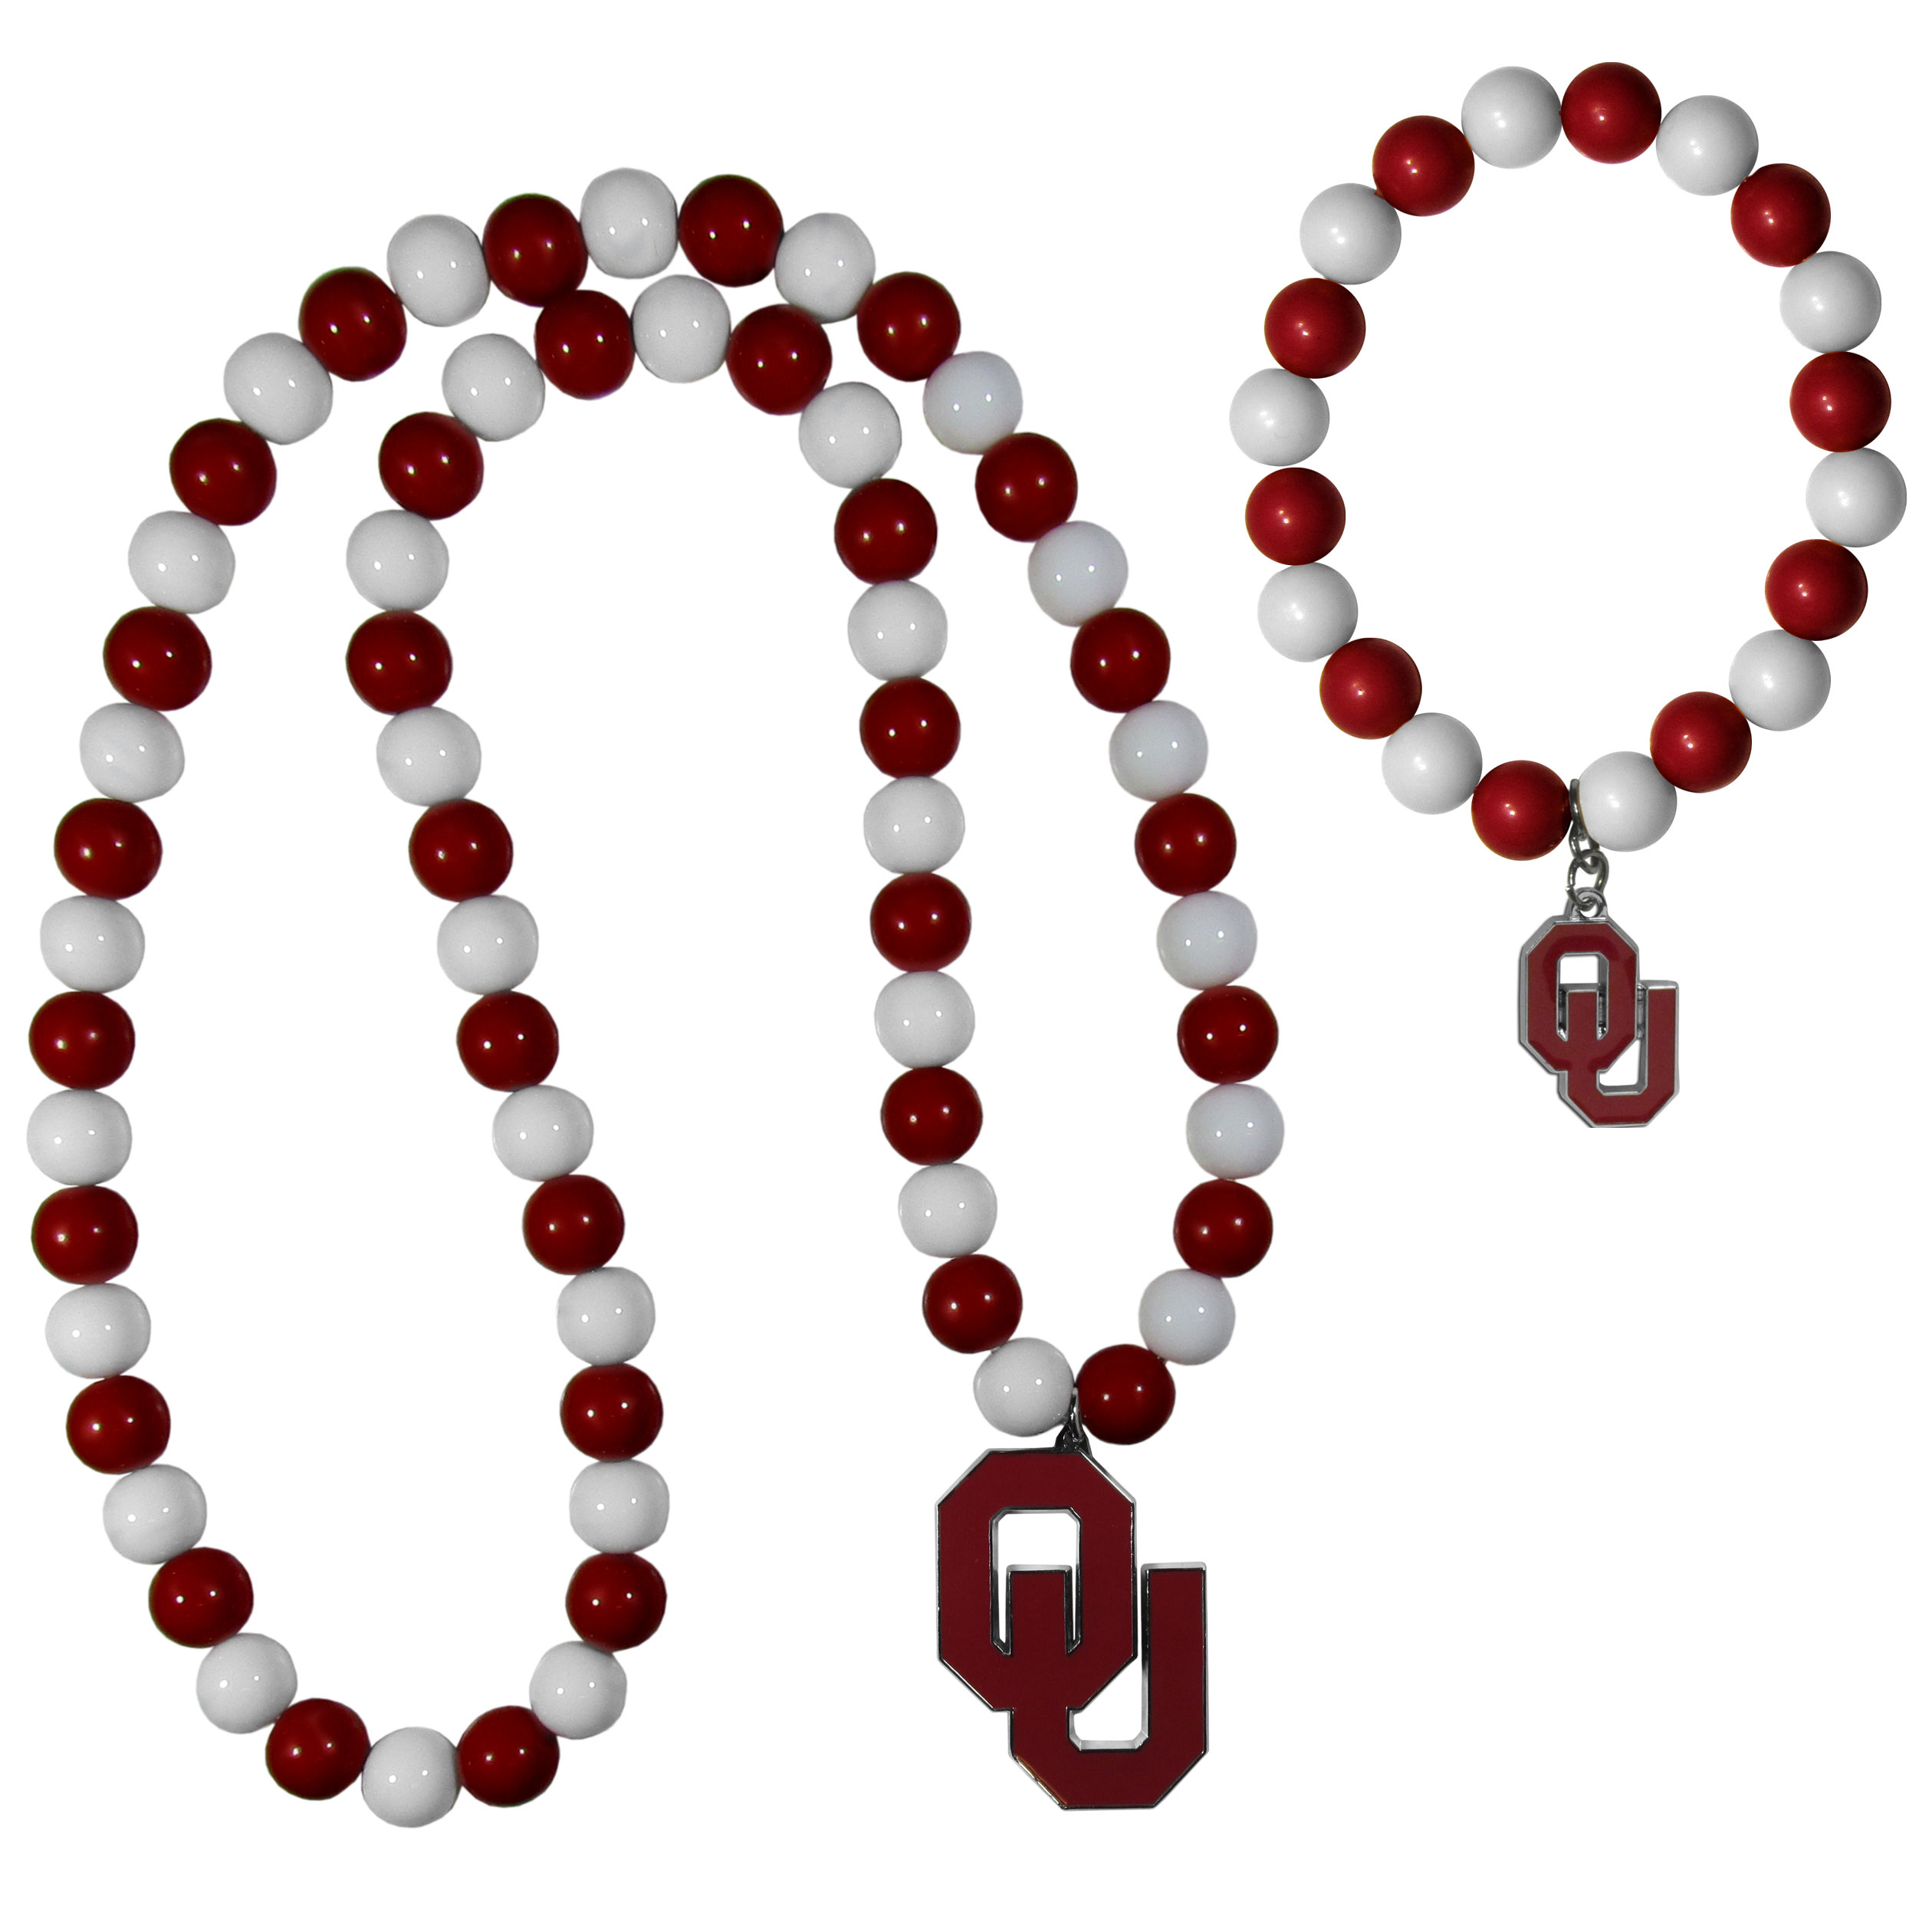 Oklahoma Sooners Fan Bead Necklace and Bracelet Set - These fun and colorful Oklahoma Sooners fan bead jewelry pieces are an eyecatching way to show off your team spirit. The striking necklace is a 24 inch string of alternating team colored beads with a large team pendant. The mathcing bracelet has alternating team colored beads on a stretch cord and features a matching team charm.